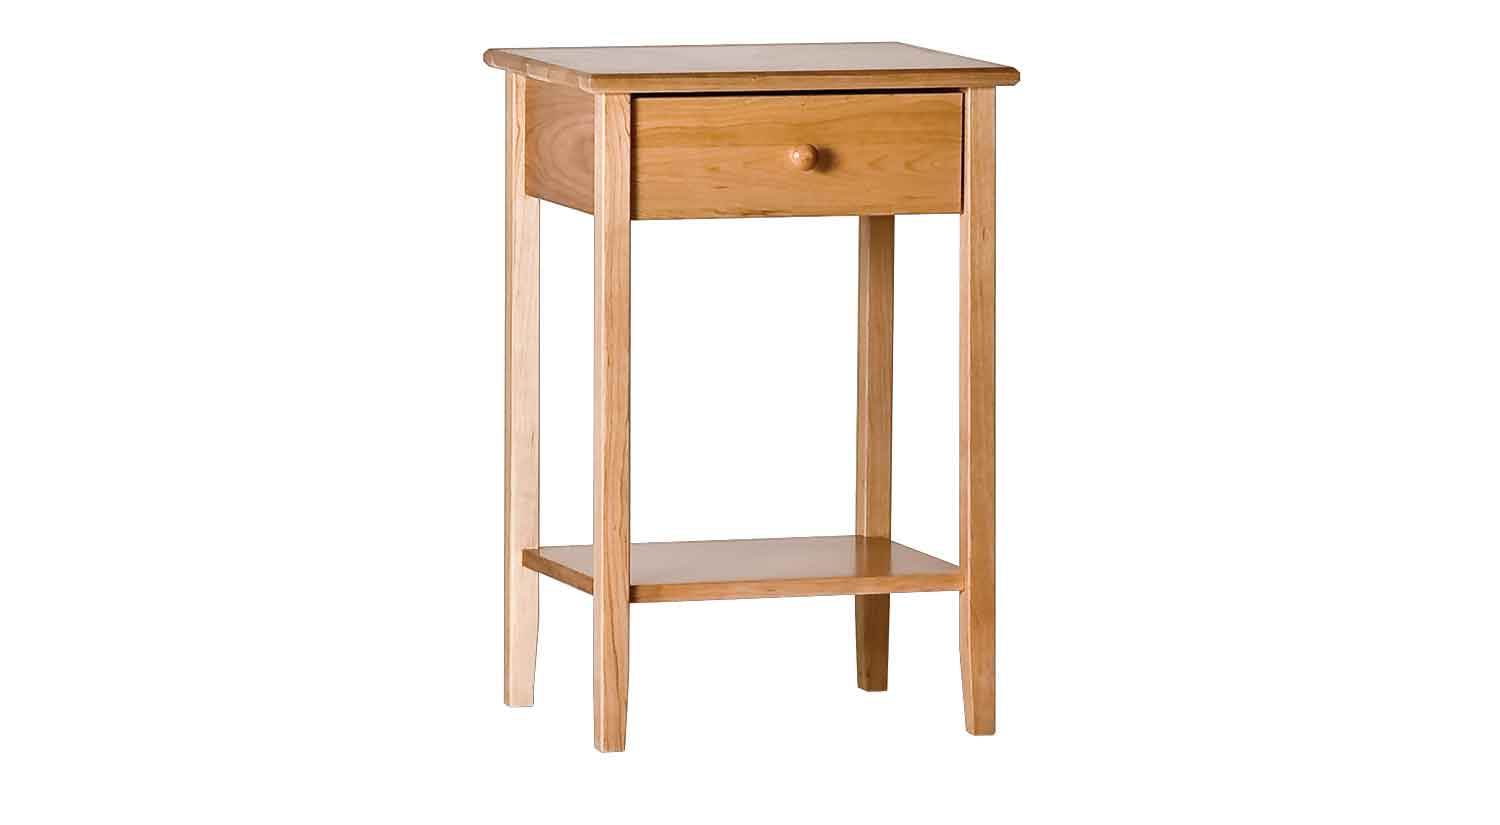 tall accent table stylish item for utilizing the empty space simple with pull out drawer extra black and silver lamps knobs pulls inexpensive console wine rack shelf pair rattan